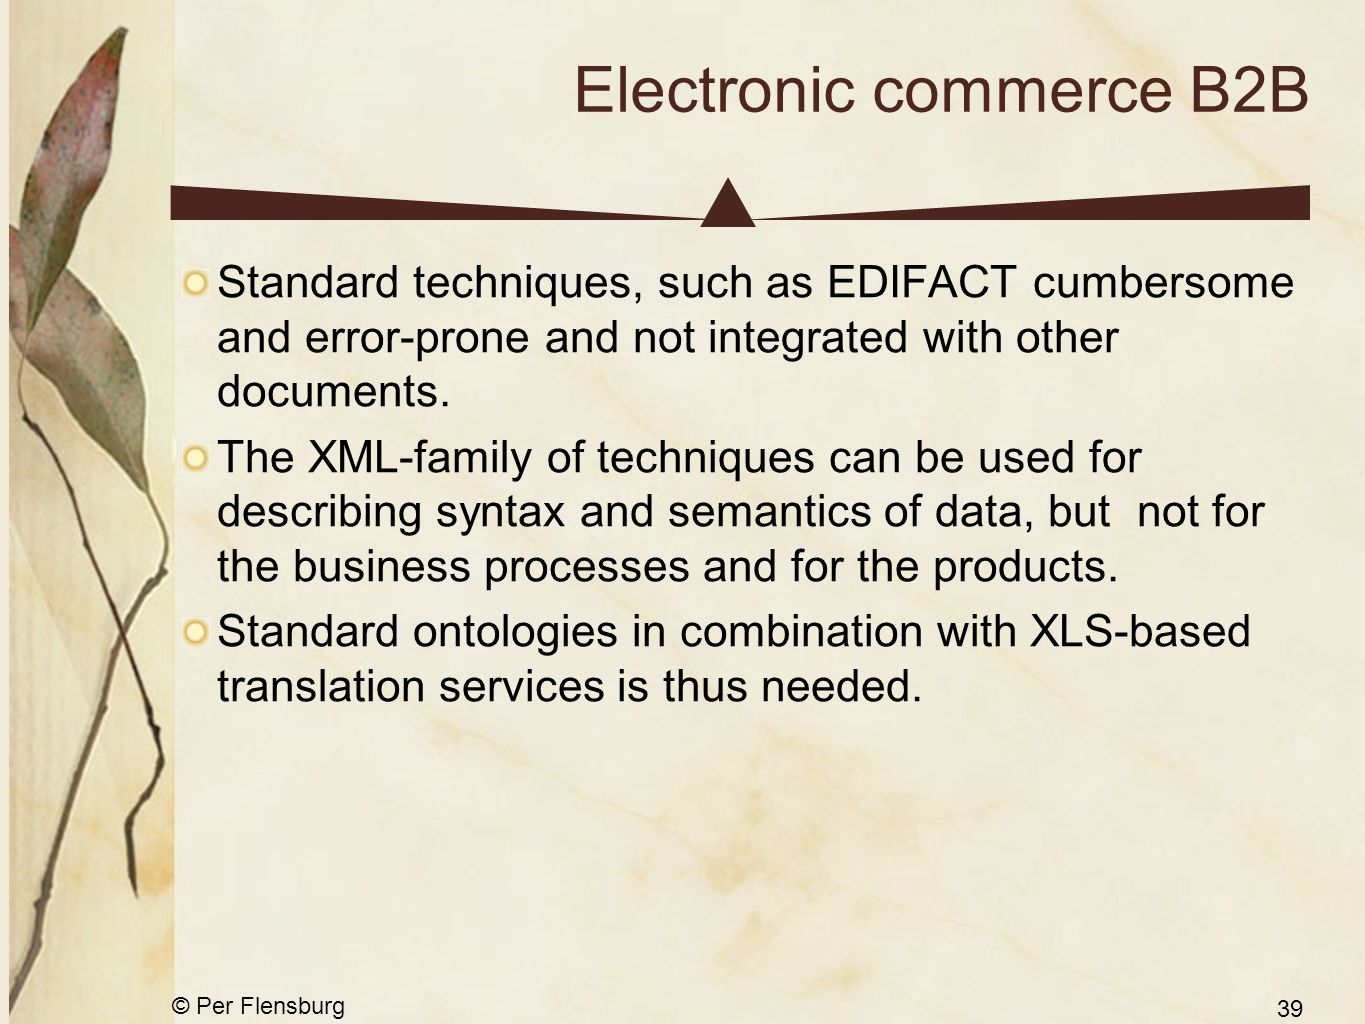 © Per Flensburg 39 Electronic commerce B2B Standard techniques, such as EDIFACT cumbersome and error-prone and not integrated with other documents. Th